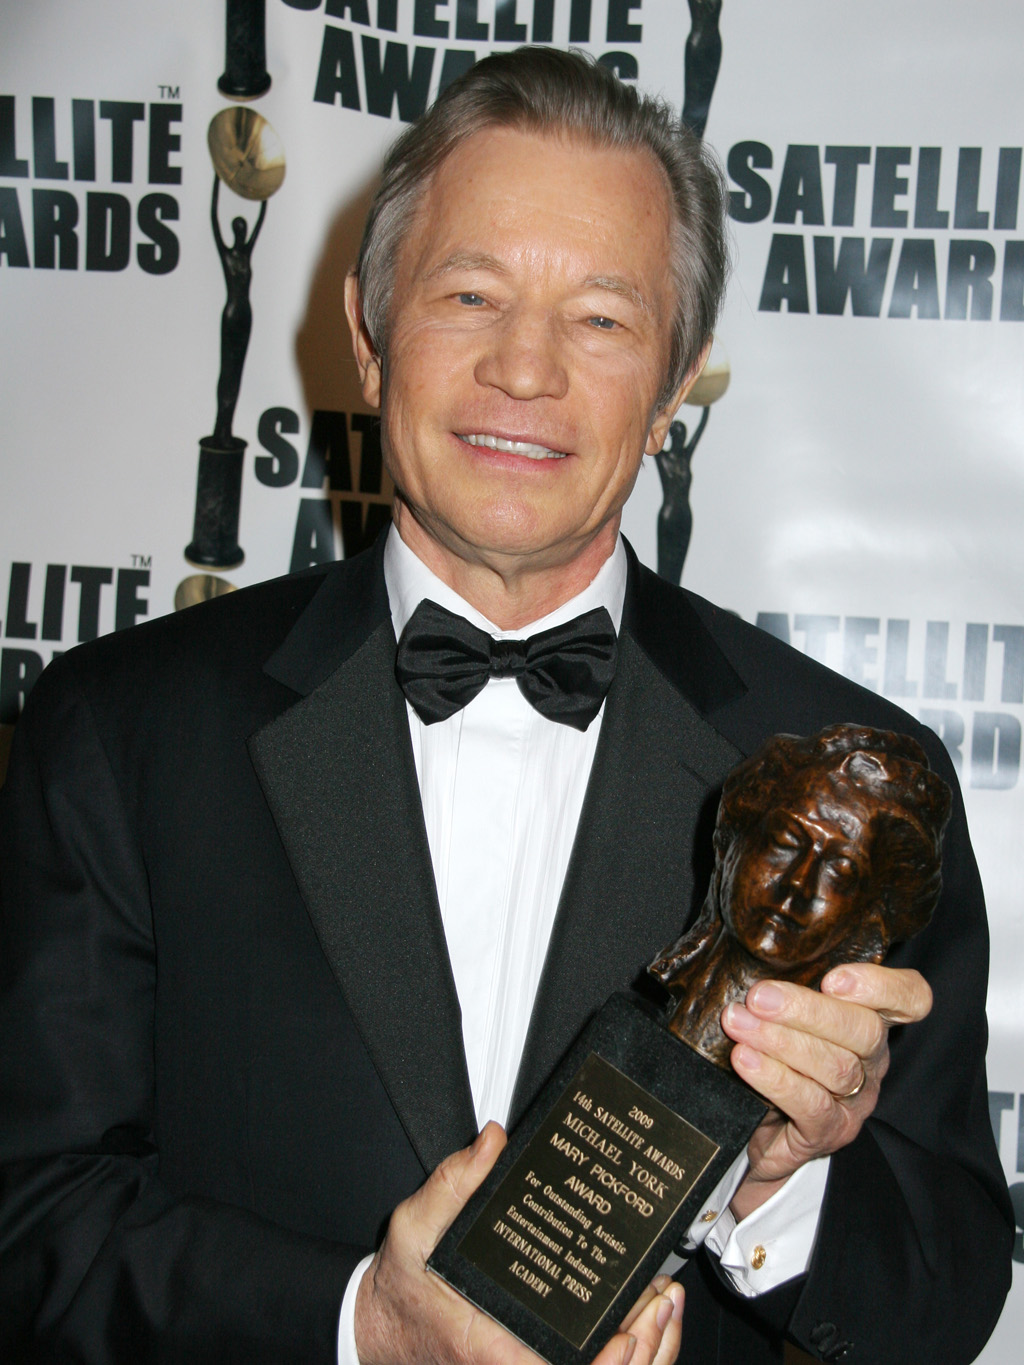 michael york 2015michael york 2016, michael york wiki, michael york 2017, michael york photo, michael york interview, michael york actor, michael york simpsons, michael york audiobook, michael york fedora, michael york net worth, michael york address, michael york imdb, michael york 2015, michael york 2014, michael york eyes, michael york romeo and juliet, michael york young, michael york wikipedia, michael york filmography, michael york austin powers